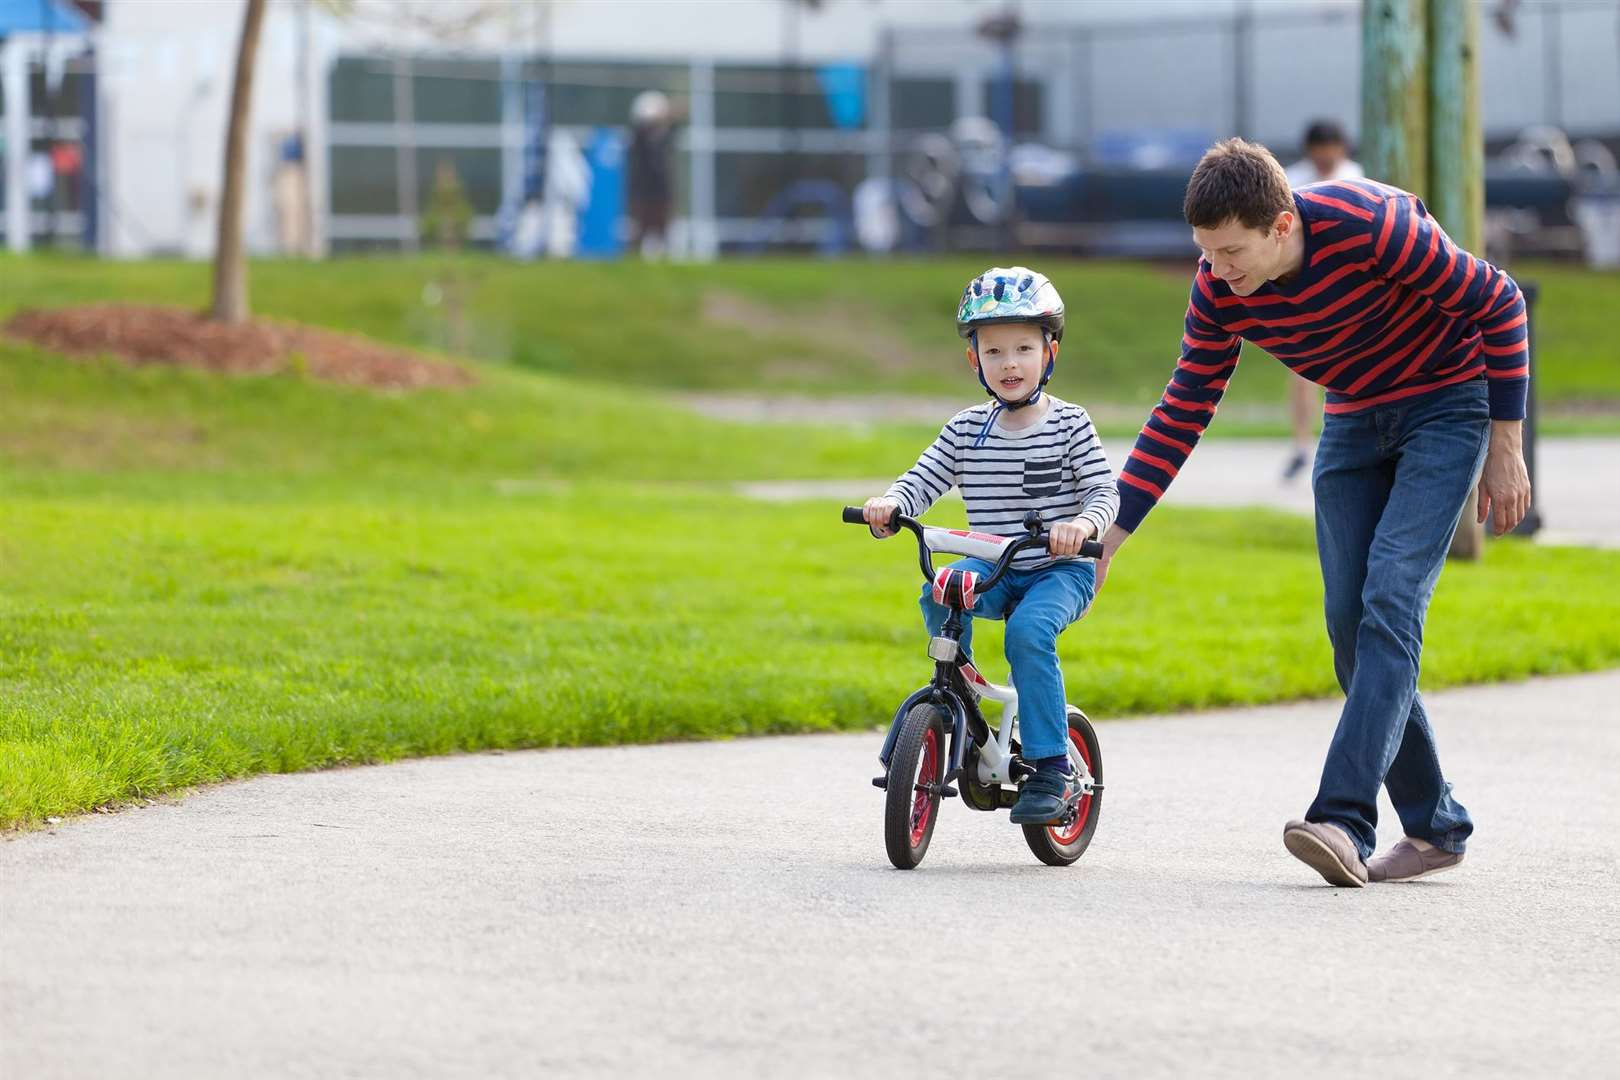 Do you and the kids need some help cracking the bike riding?